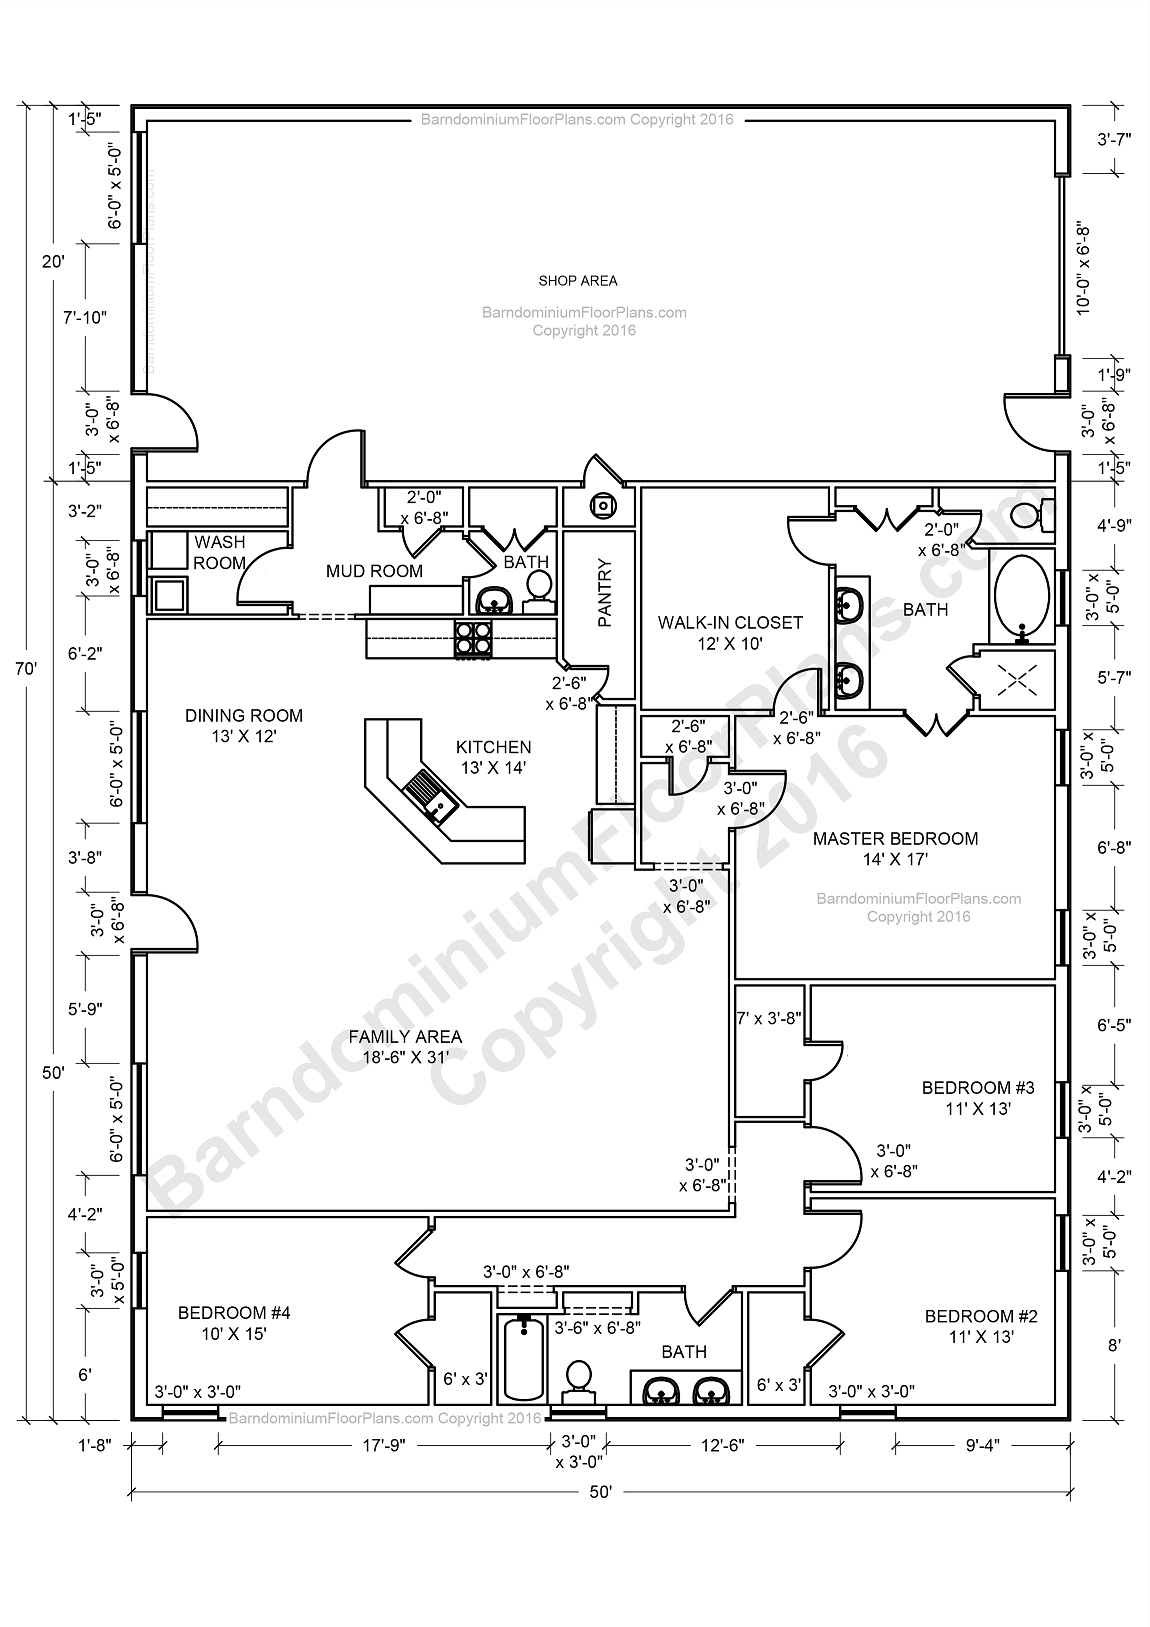 Barndominium floor plans barndominium floor plans 1 800 for Pole barn house floor plans and prices